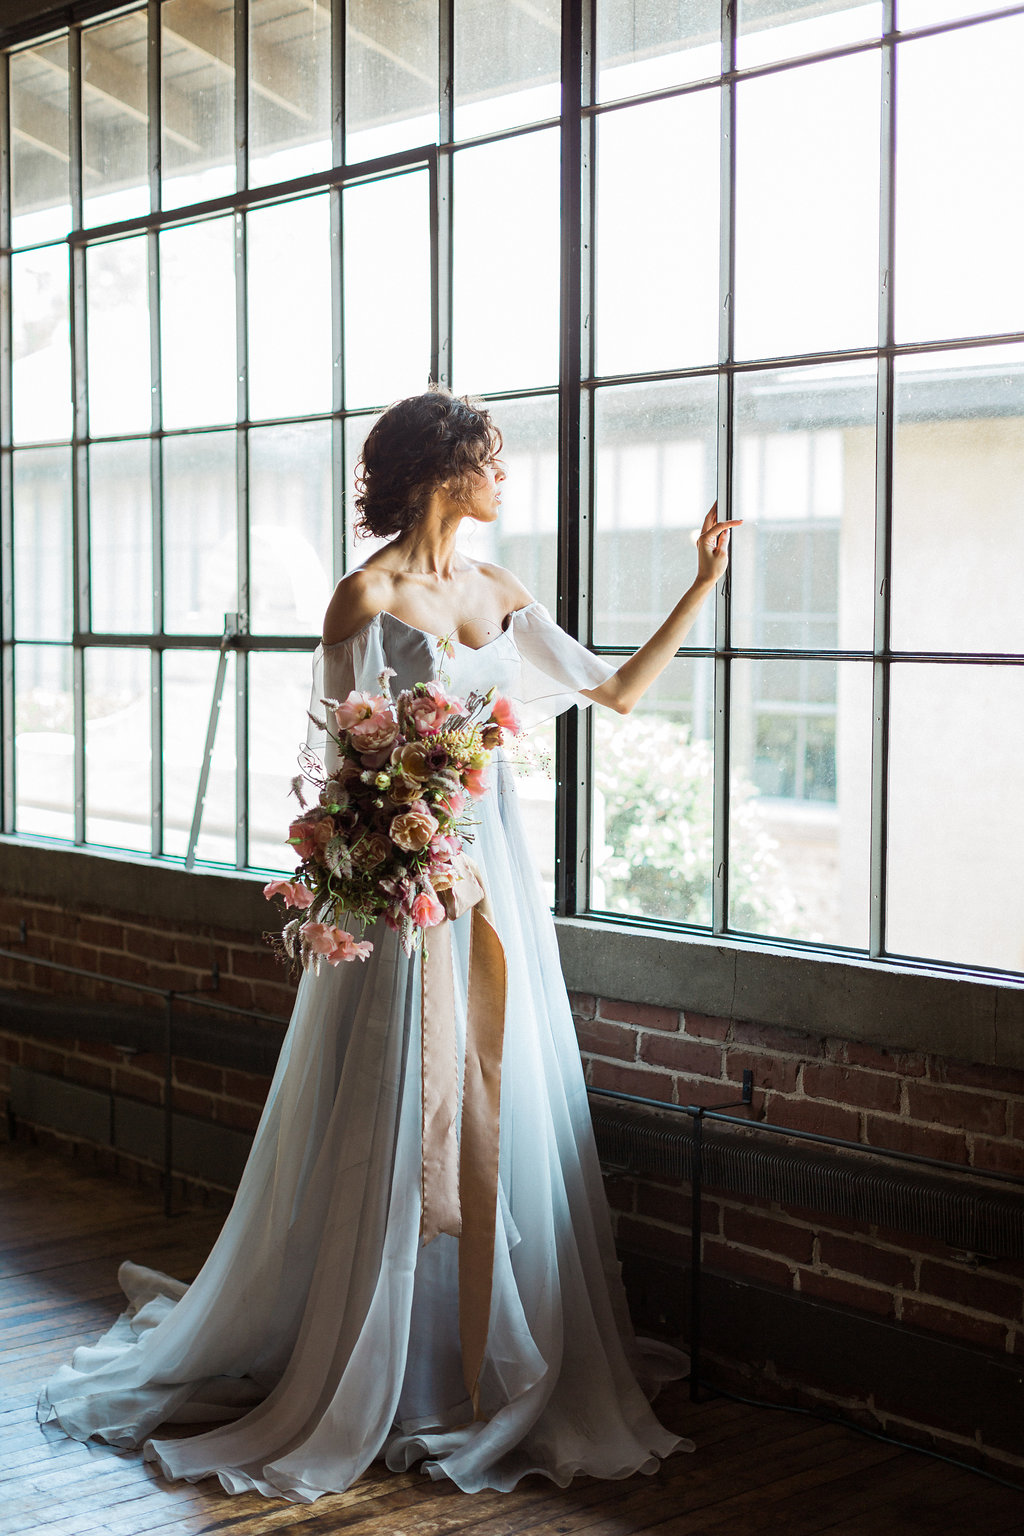 romantic industrial wedding inspiration - https://ruffledblog.com/cloudy-day-wedding-inspiration-with-a-hand-painted-bridal-gown